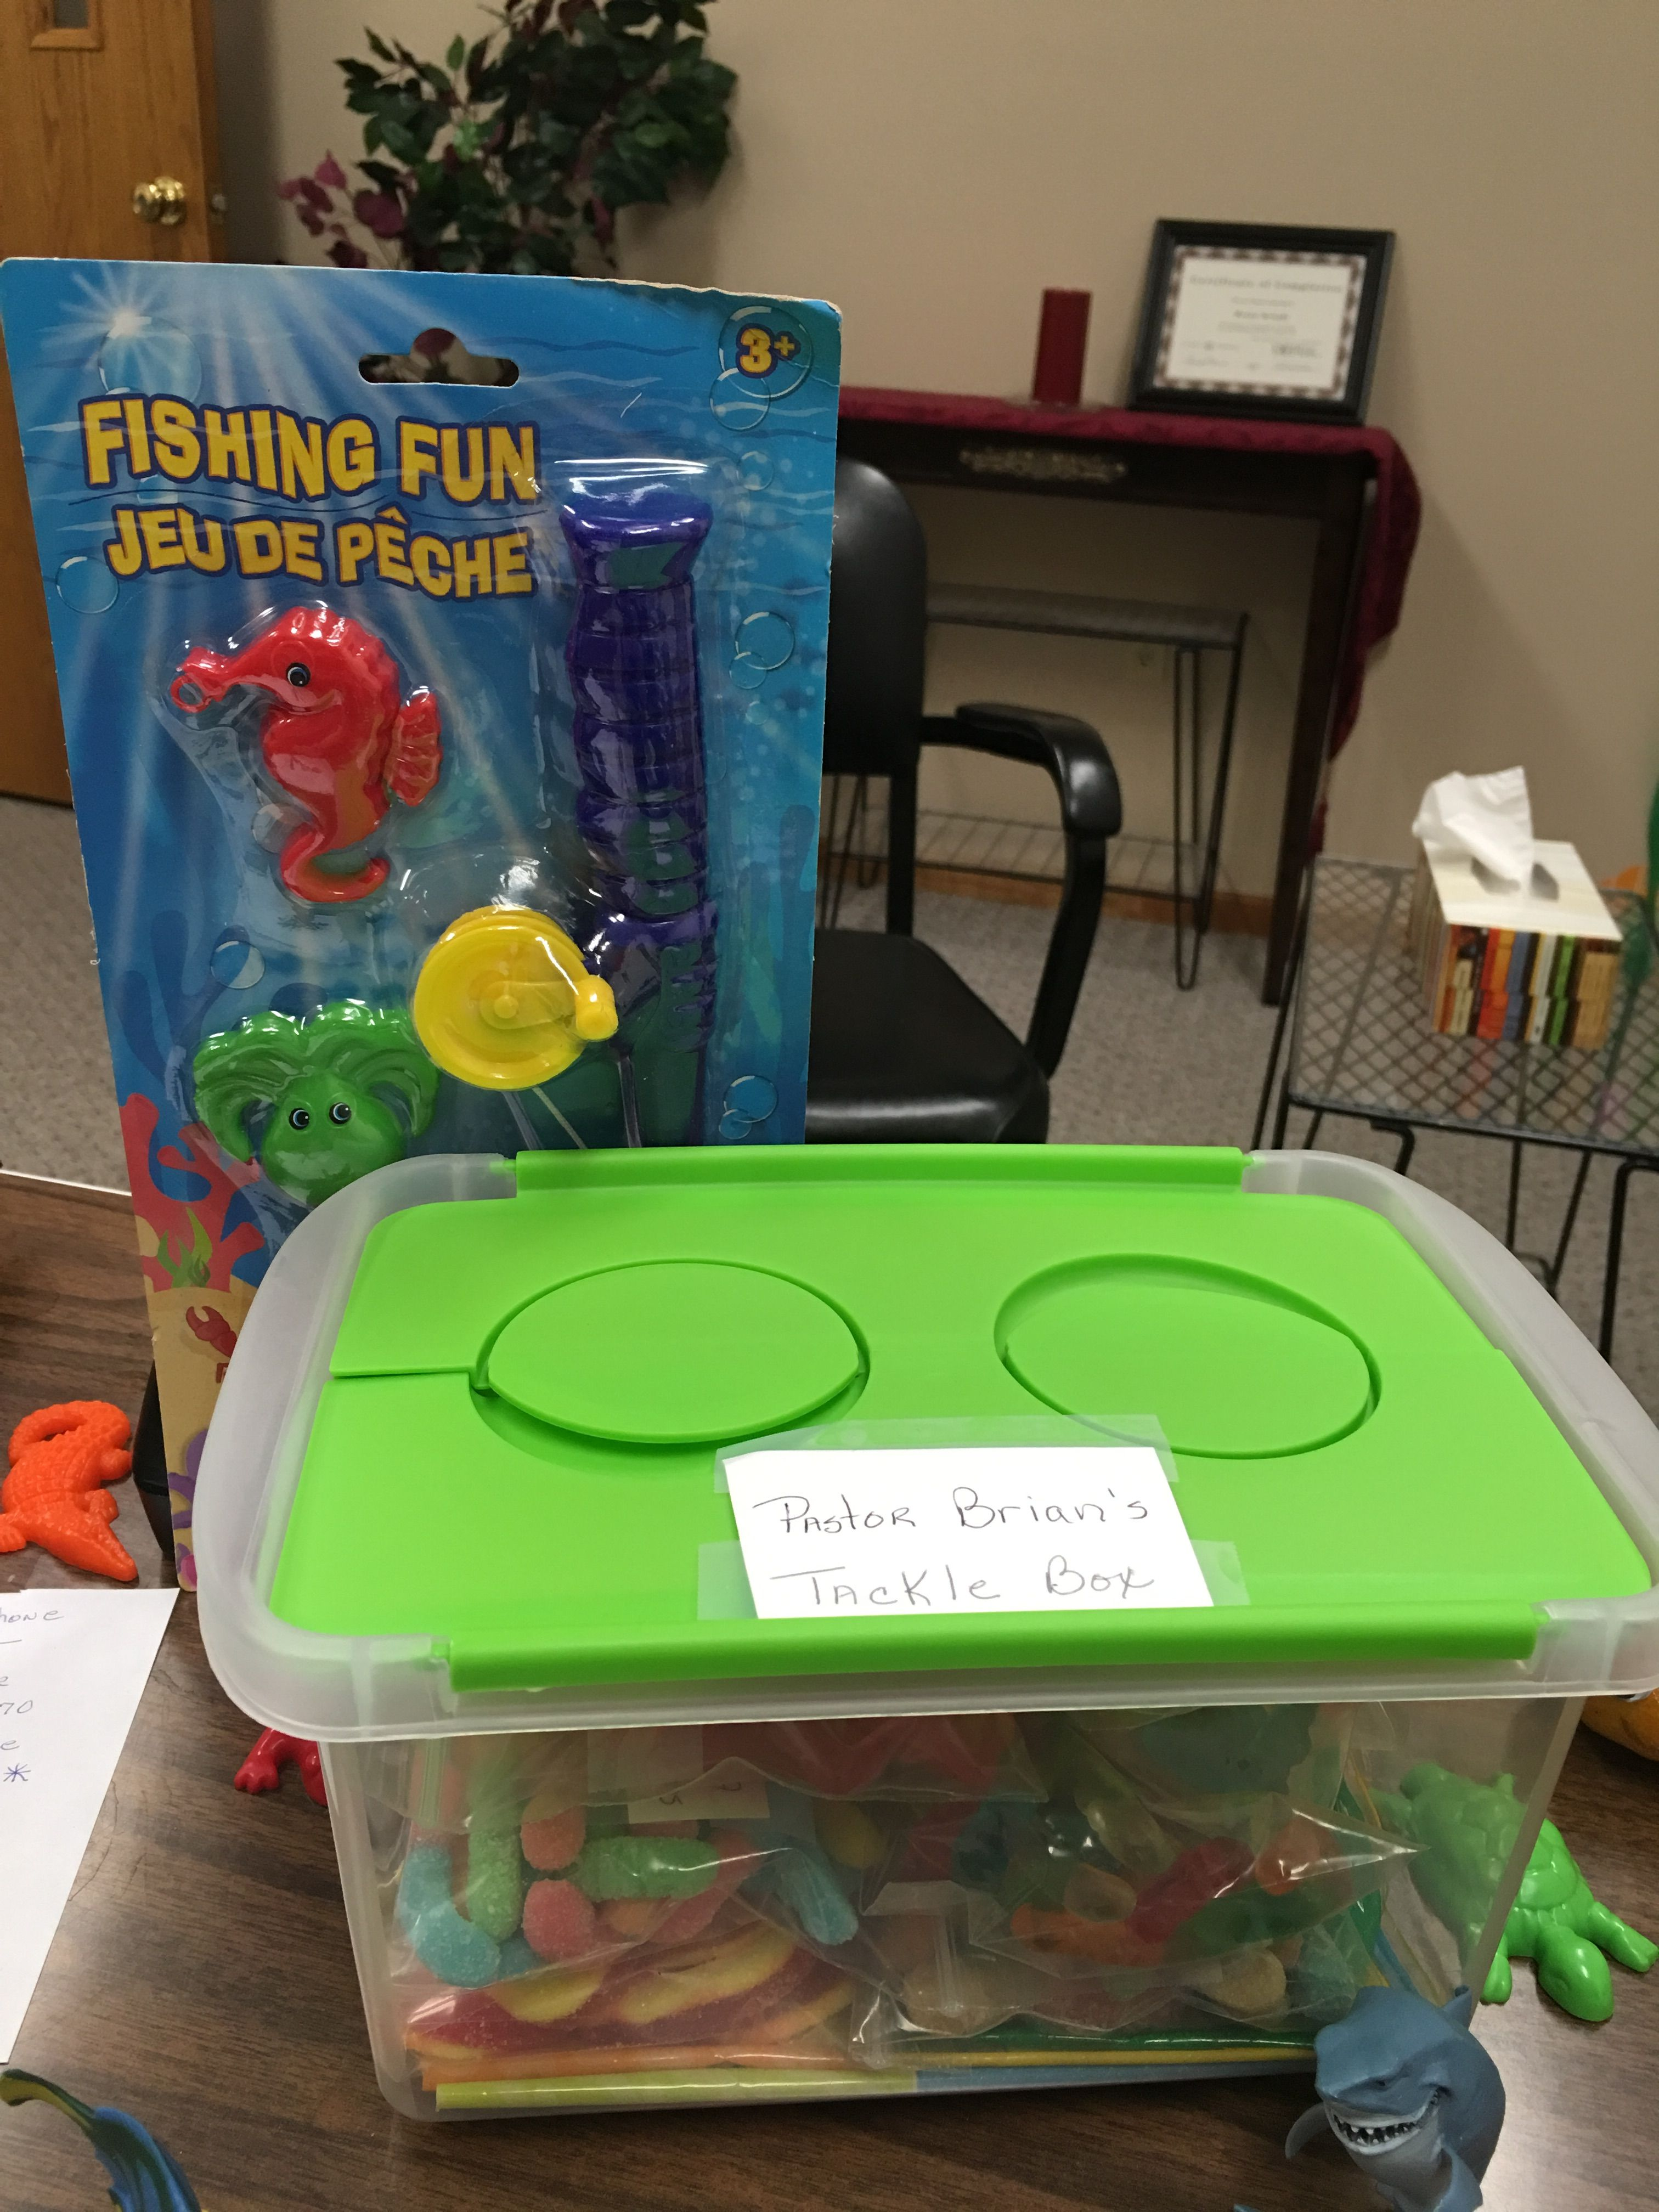 A tackle box was filled with gummy worms and fishes the